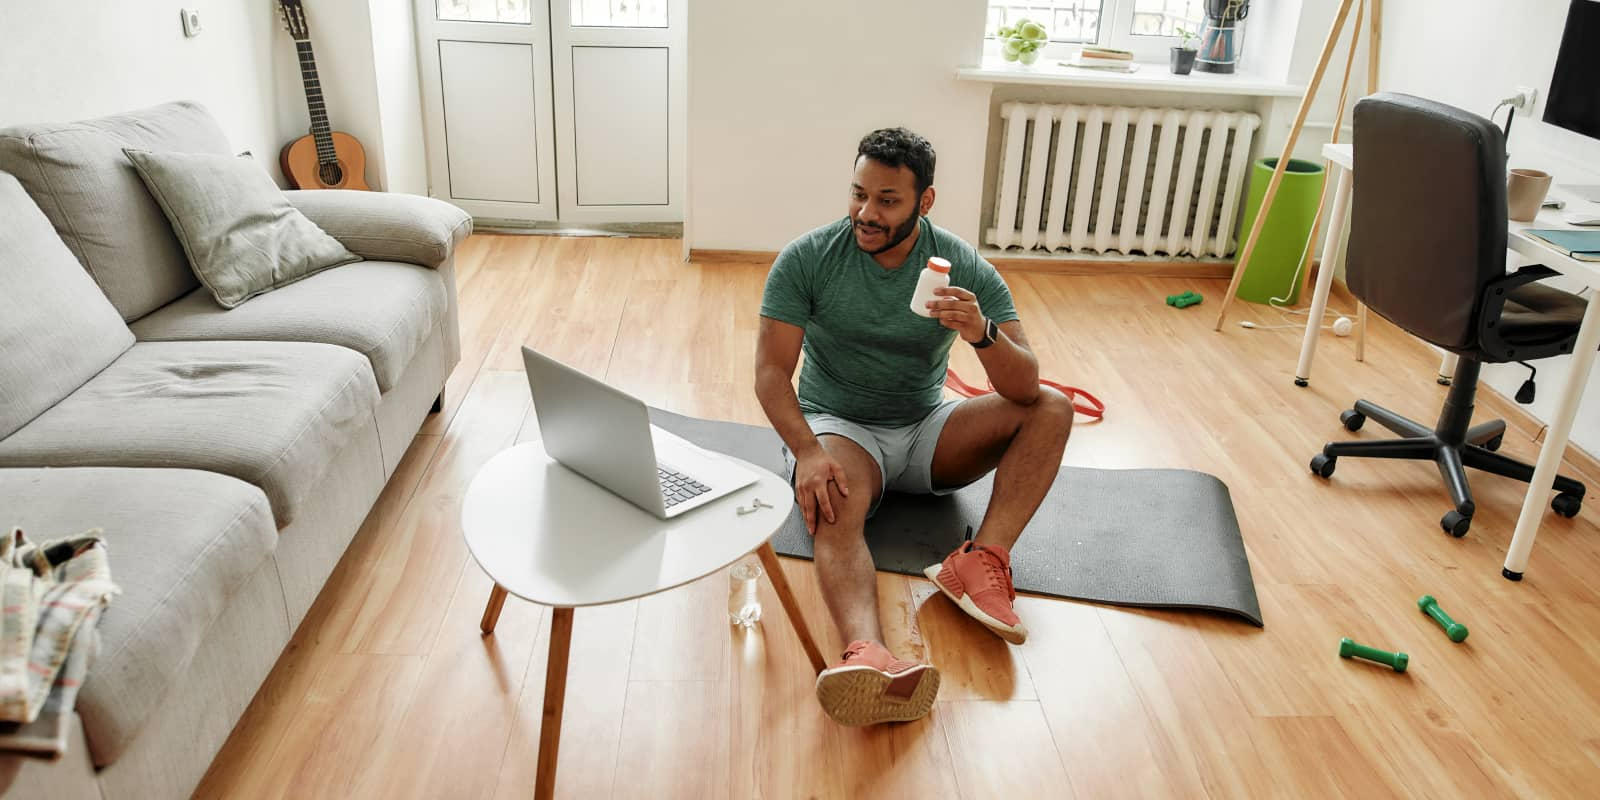 Man on wood floor with yoga mat doing a workout over video call on laptop